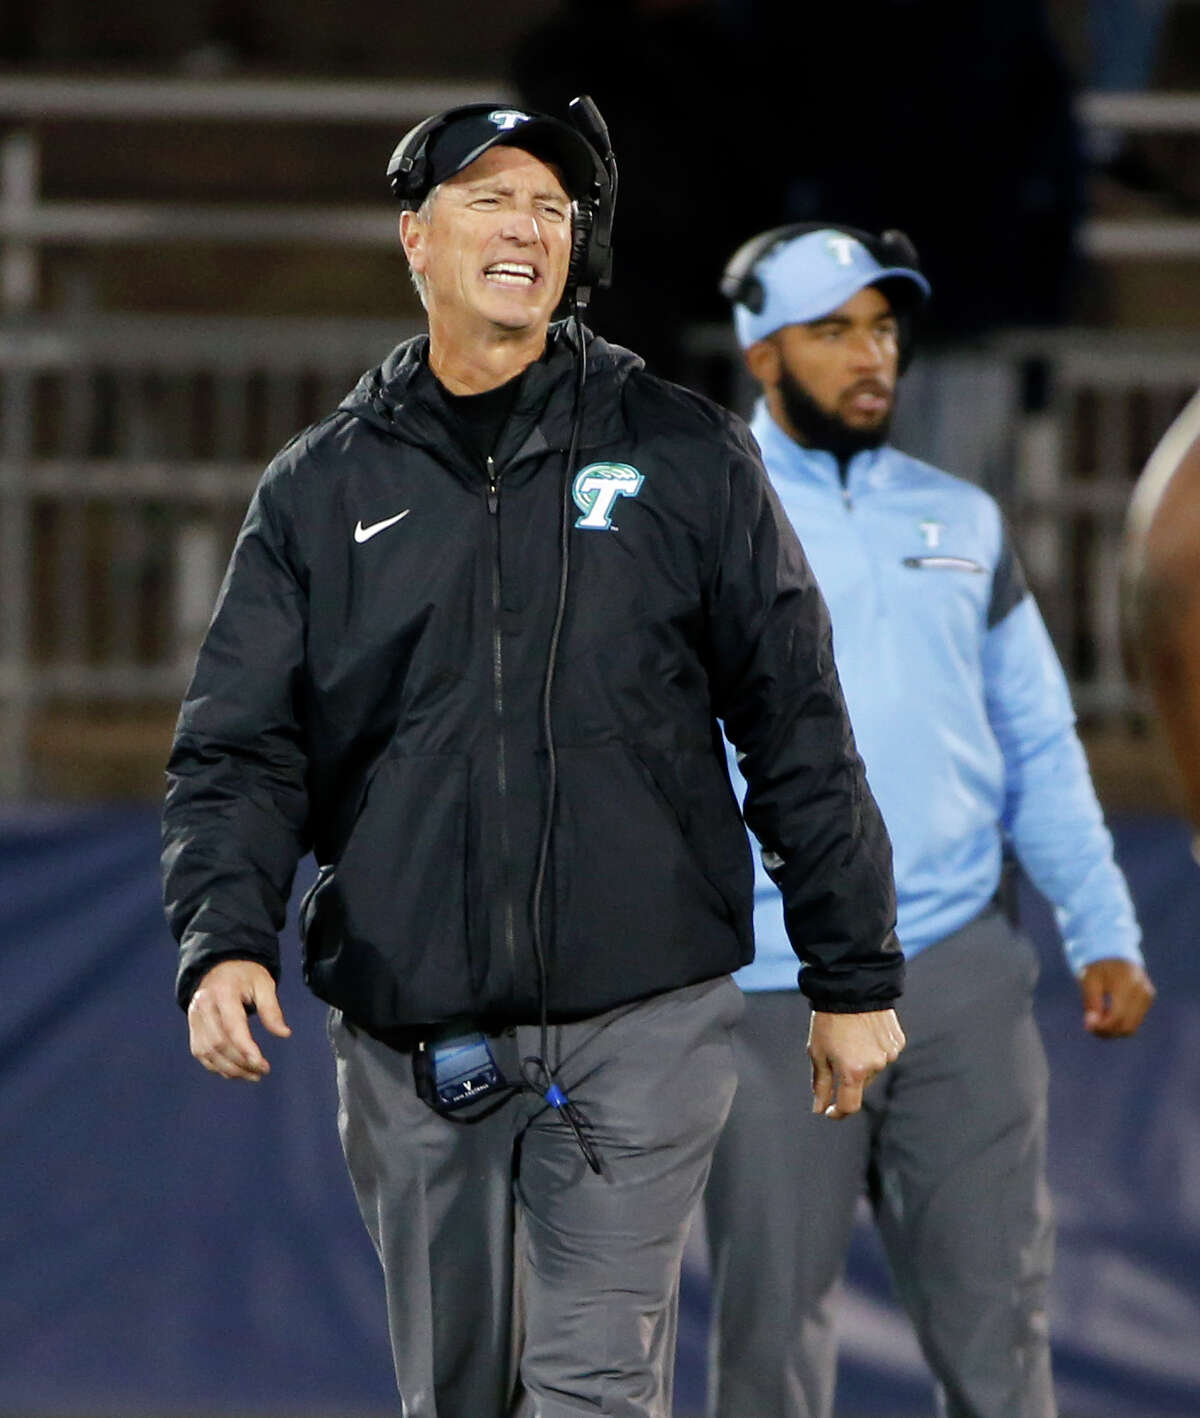 FILE - In this Nov. 26, 2016, file photo, Tulane head coach Willie Fritz reacts to a call during the second half of an NCAA college football game against Connecticut, in East Hartford, Conn. Fritz was head coach at Georgia Southern when the Eagles took a 20-10 lead in the fourth quarter of their 2014 opener against North Carolina State. The Wolfpack rallied to win 24-23 after Fritz made a fourth-down decision _ a gut call he is still kicking himself about. Fritz is no longer interested in following his gut.